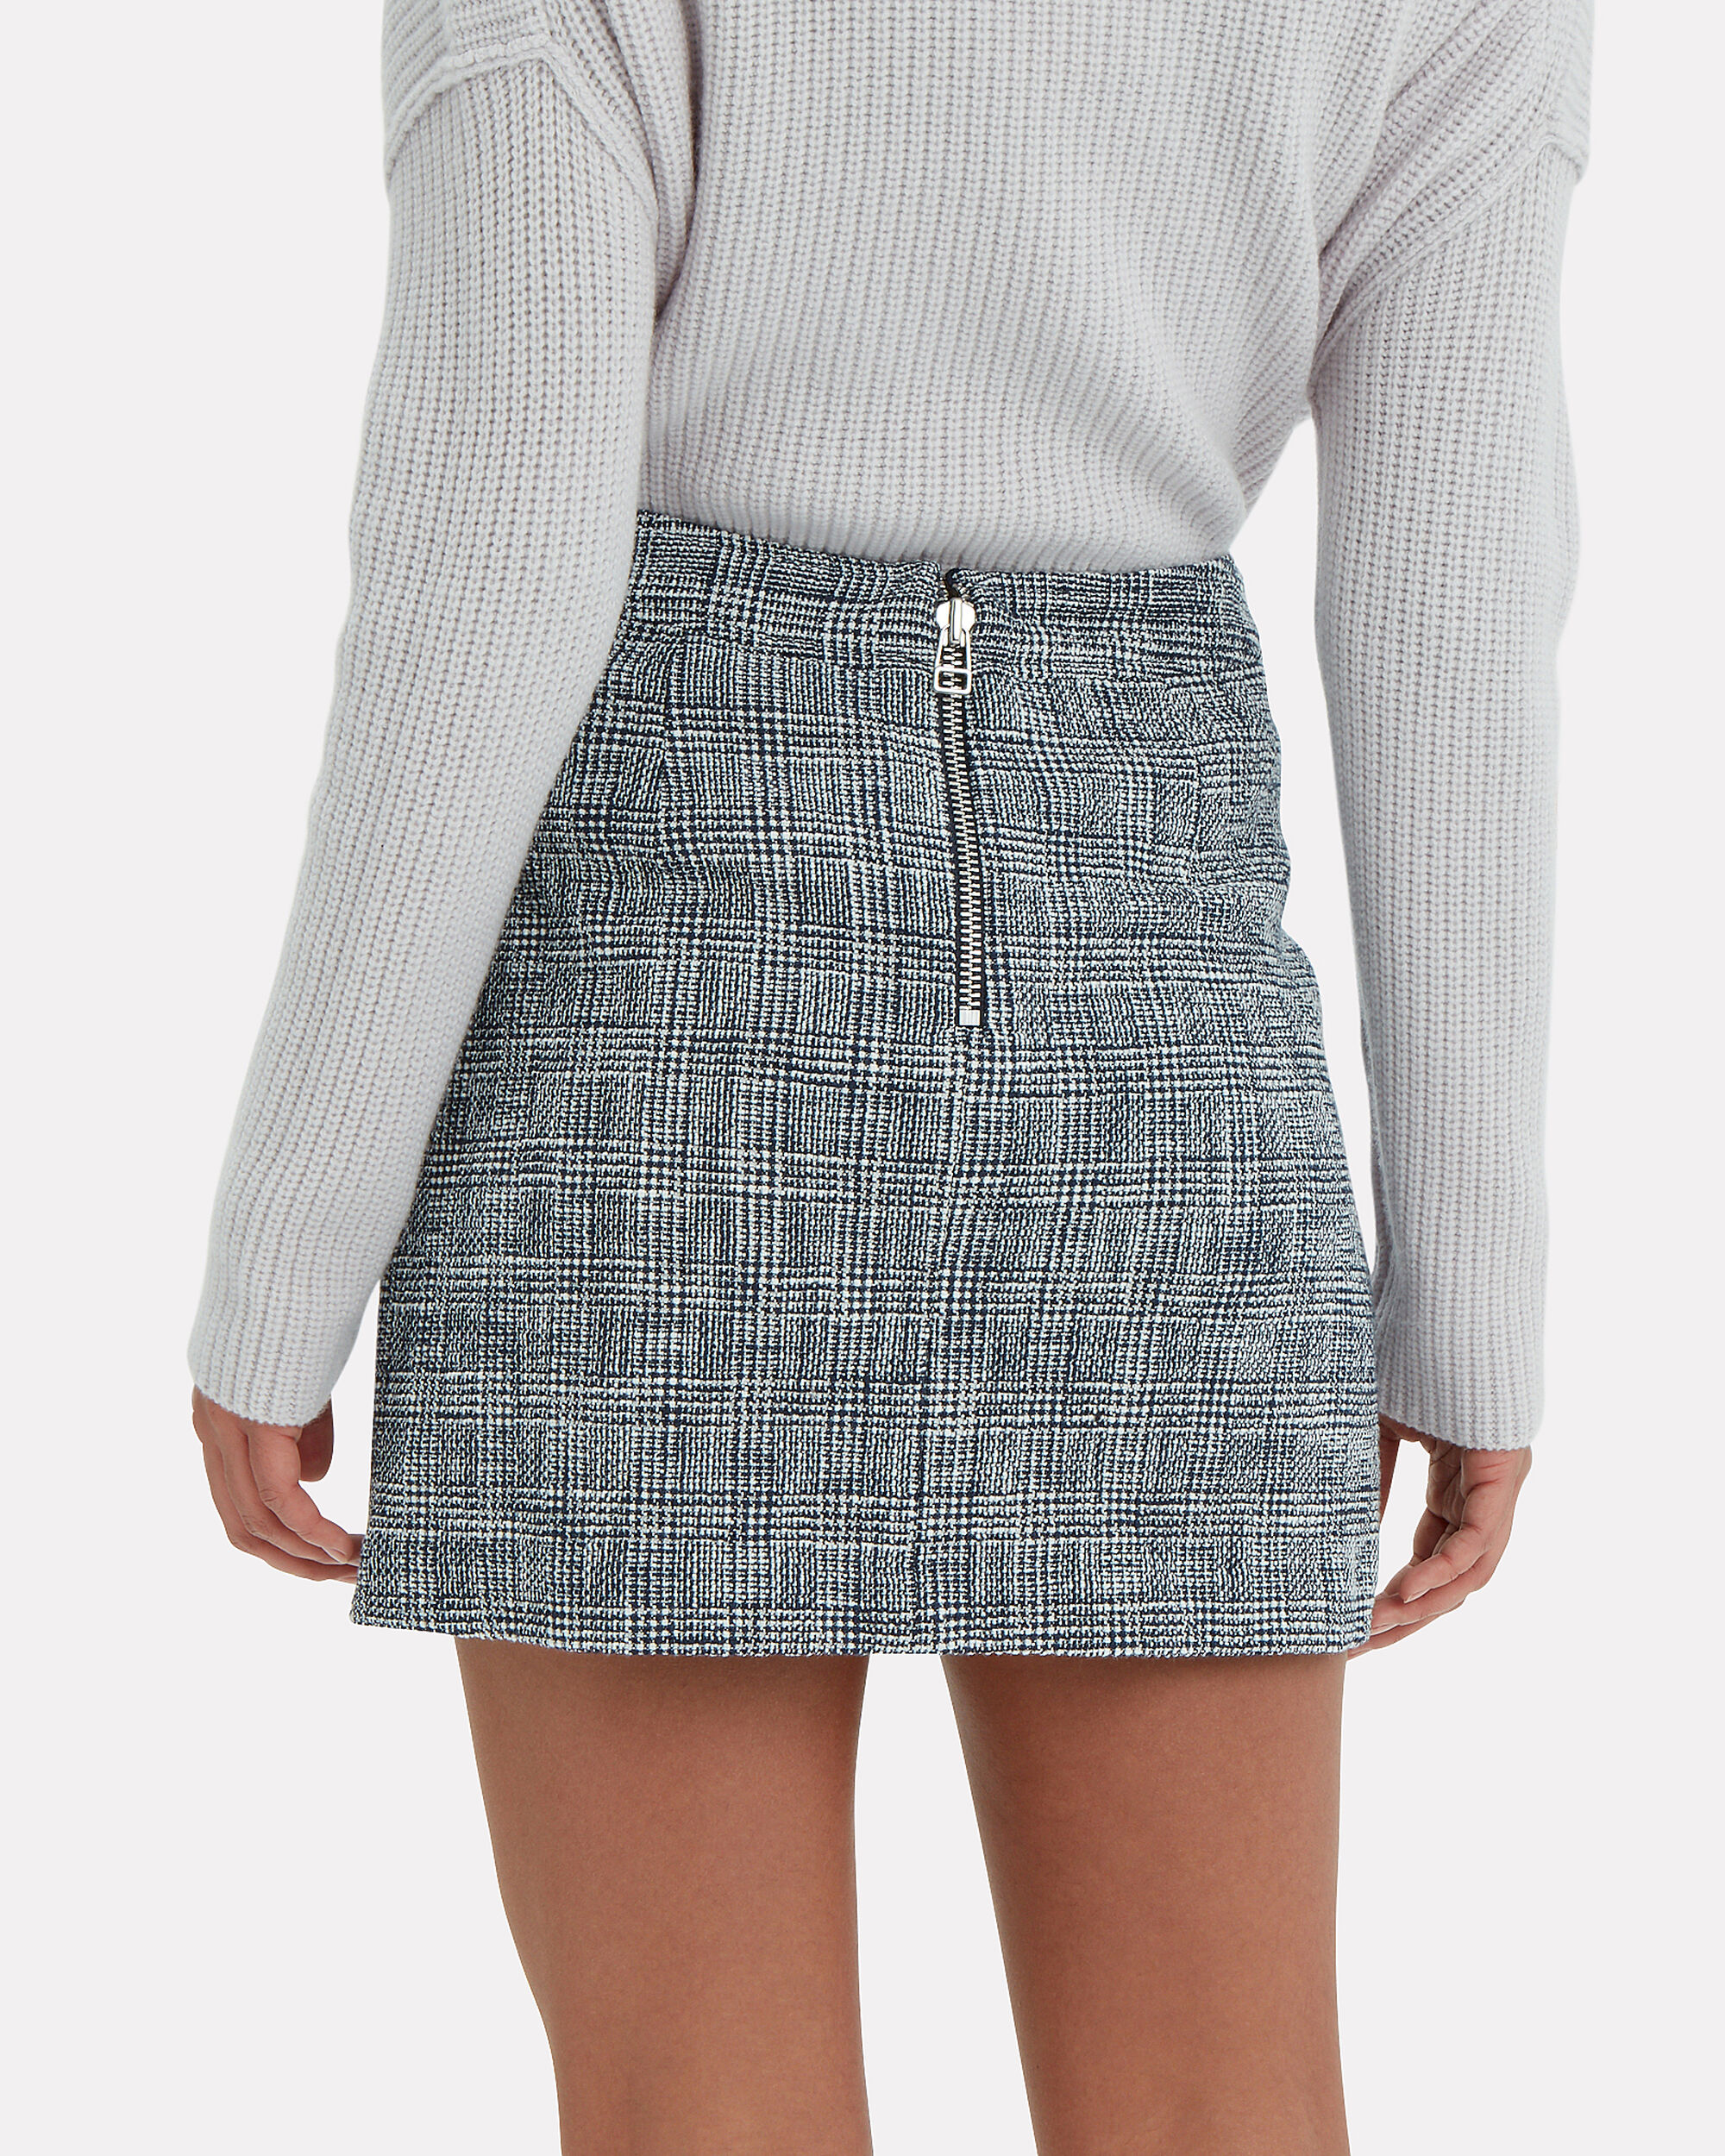 Maida Mini Skirt, BLUE-LT, hi-res